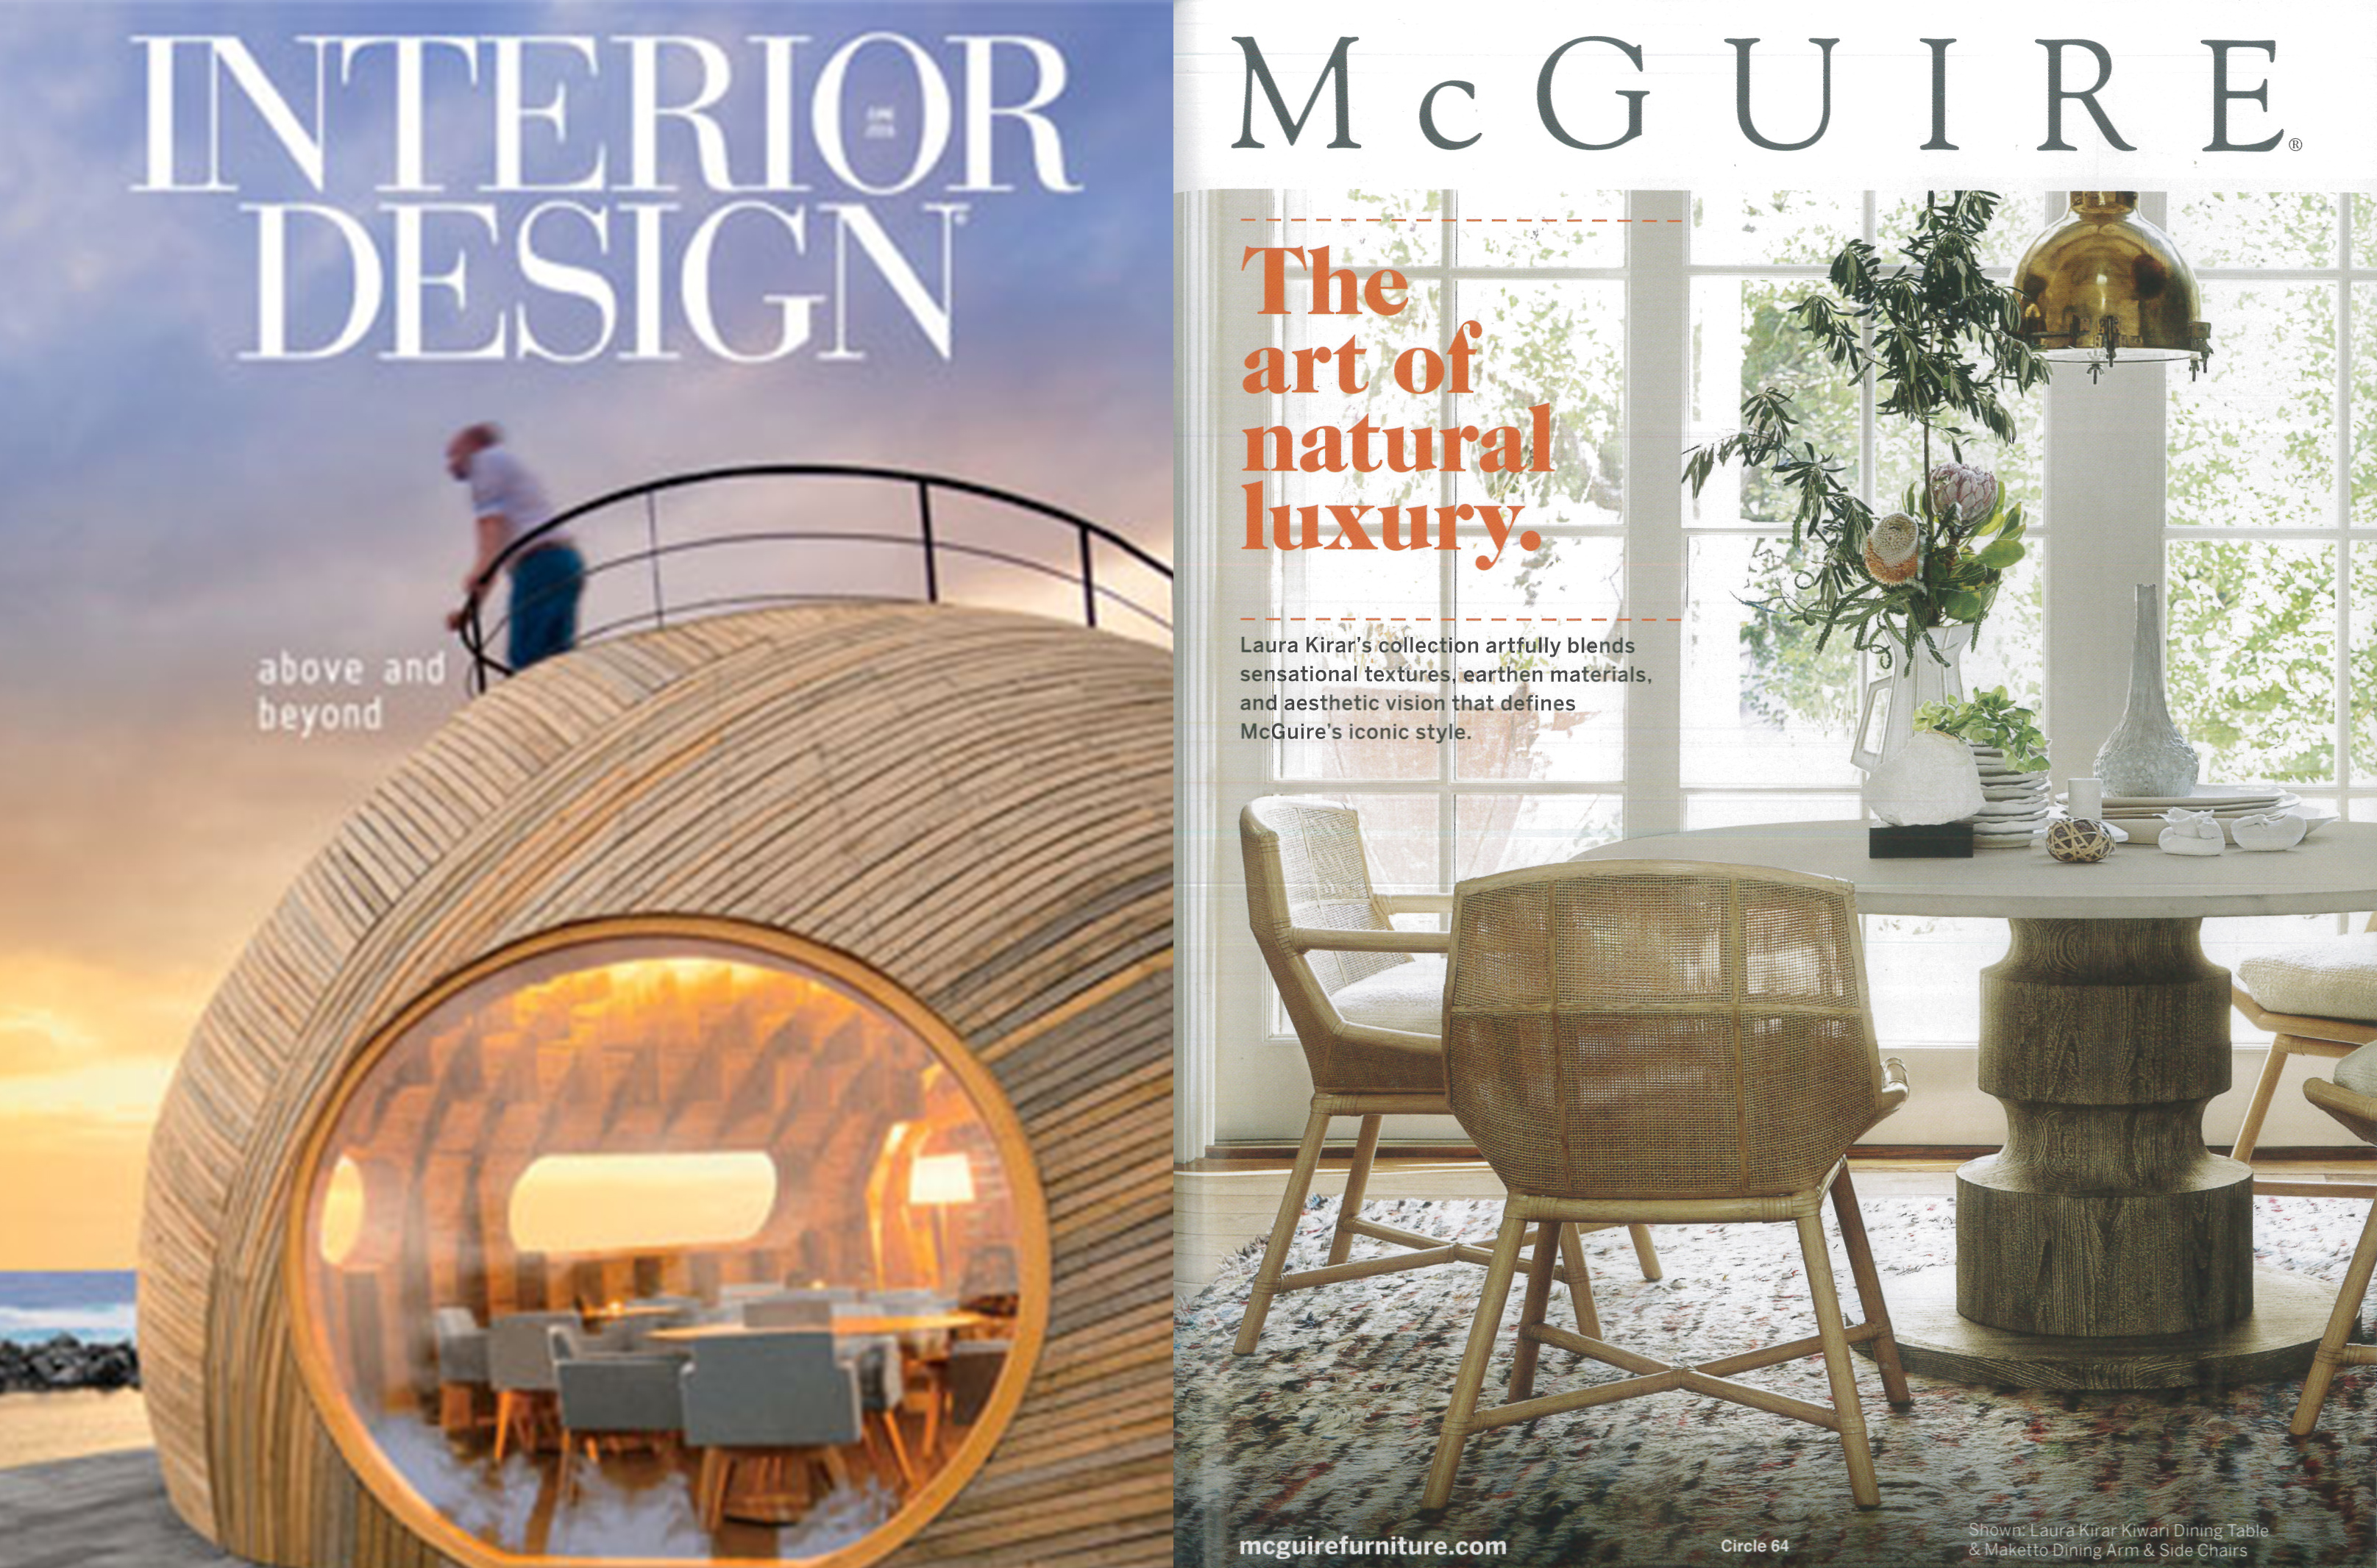 laura kirar, interior design, interior design magazine, mcguire, chairs, maketto, woven chairs, chic, stylish